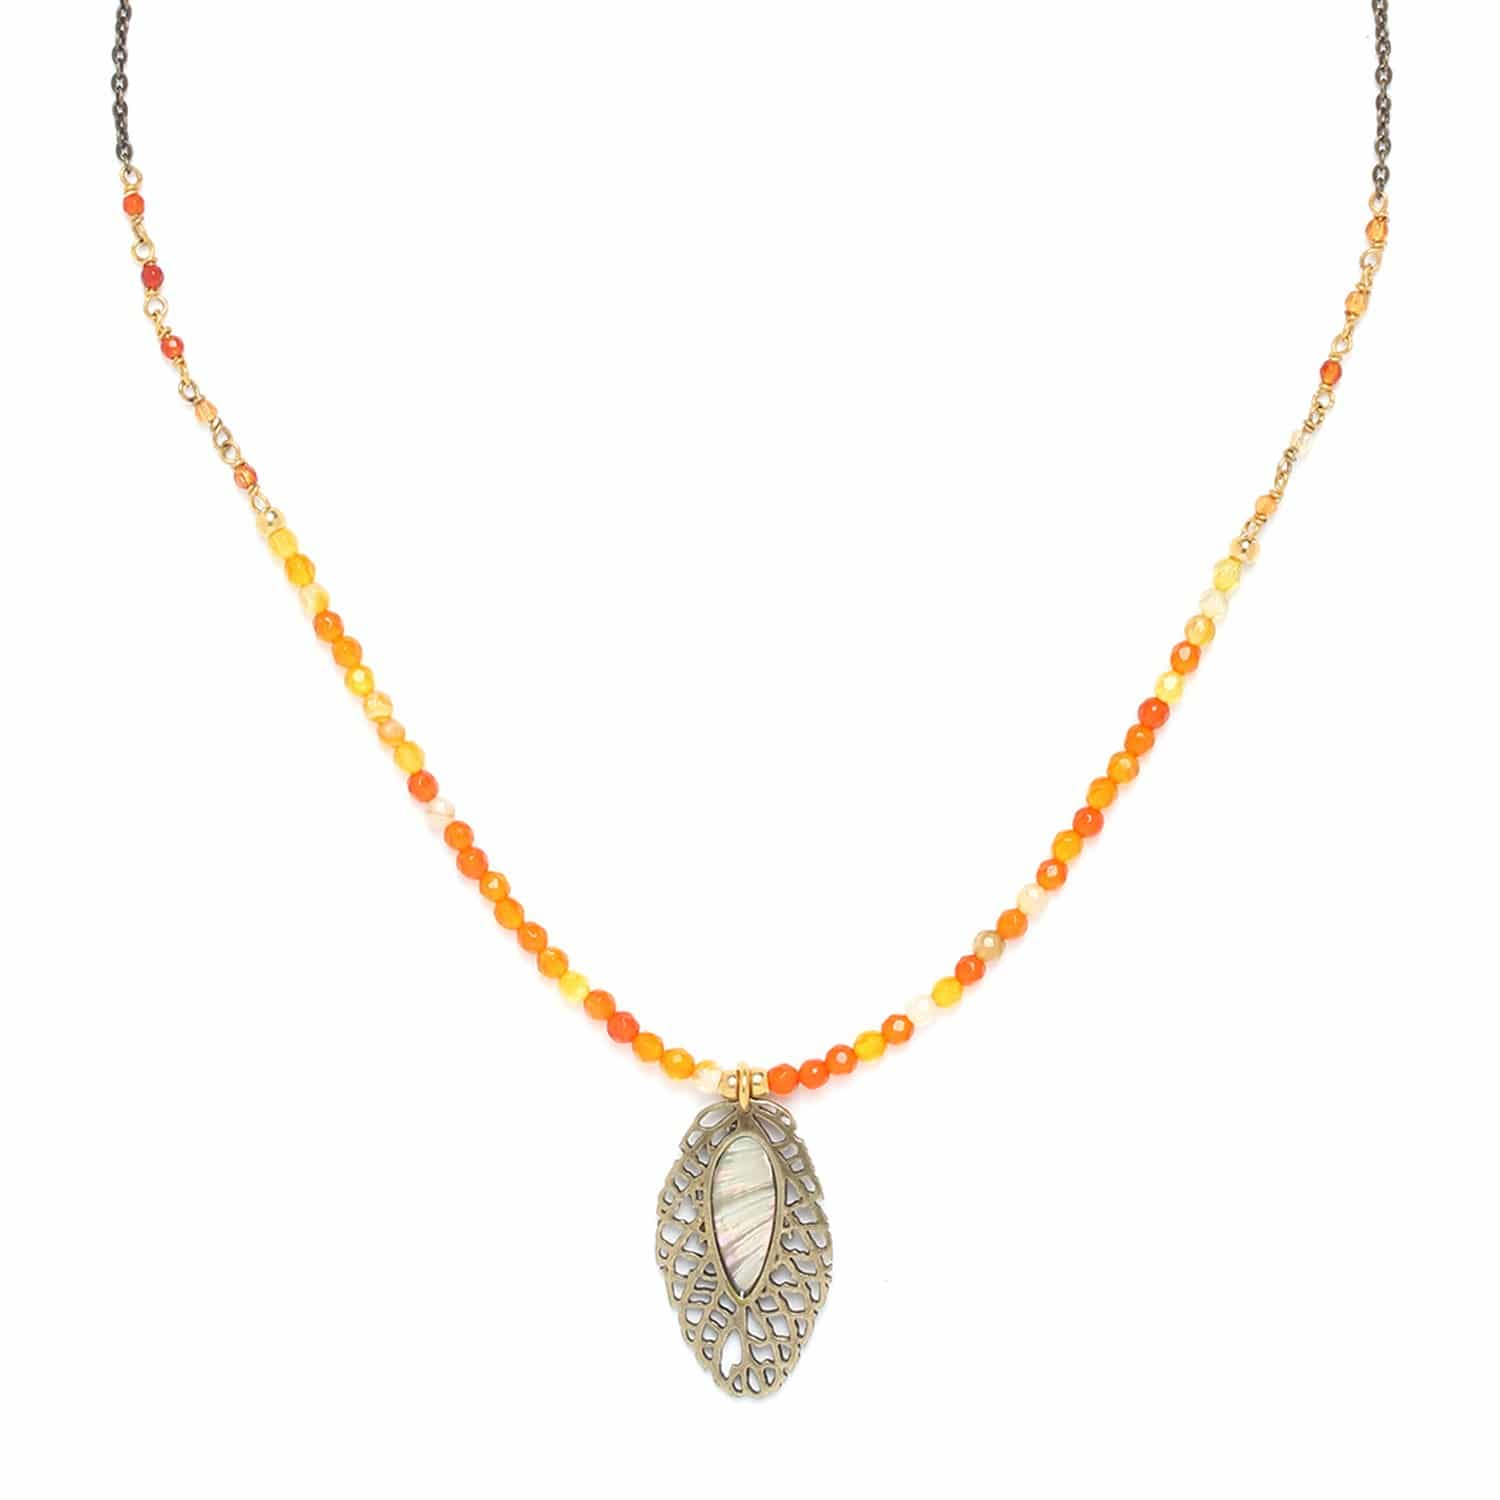 FITTONIA  agate necklace with small leaf